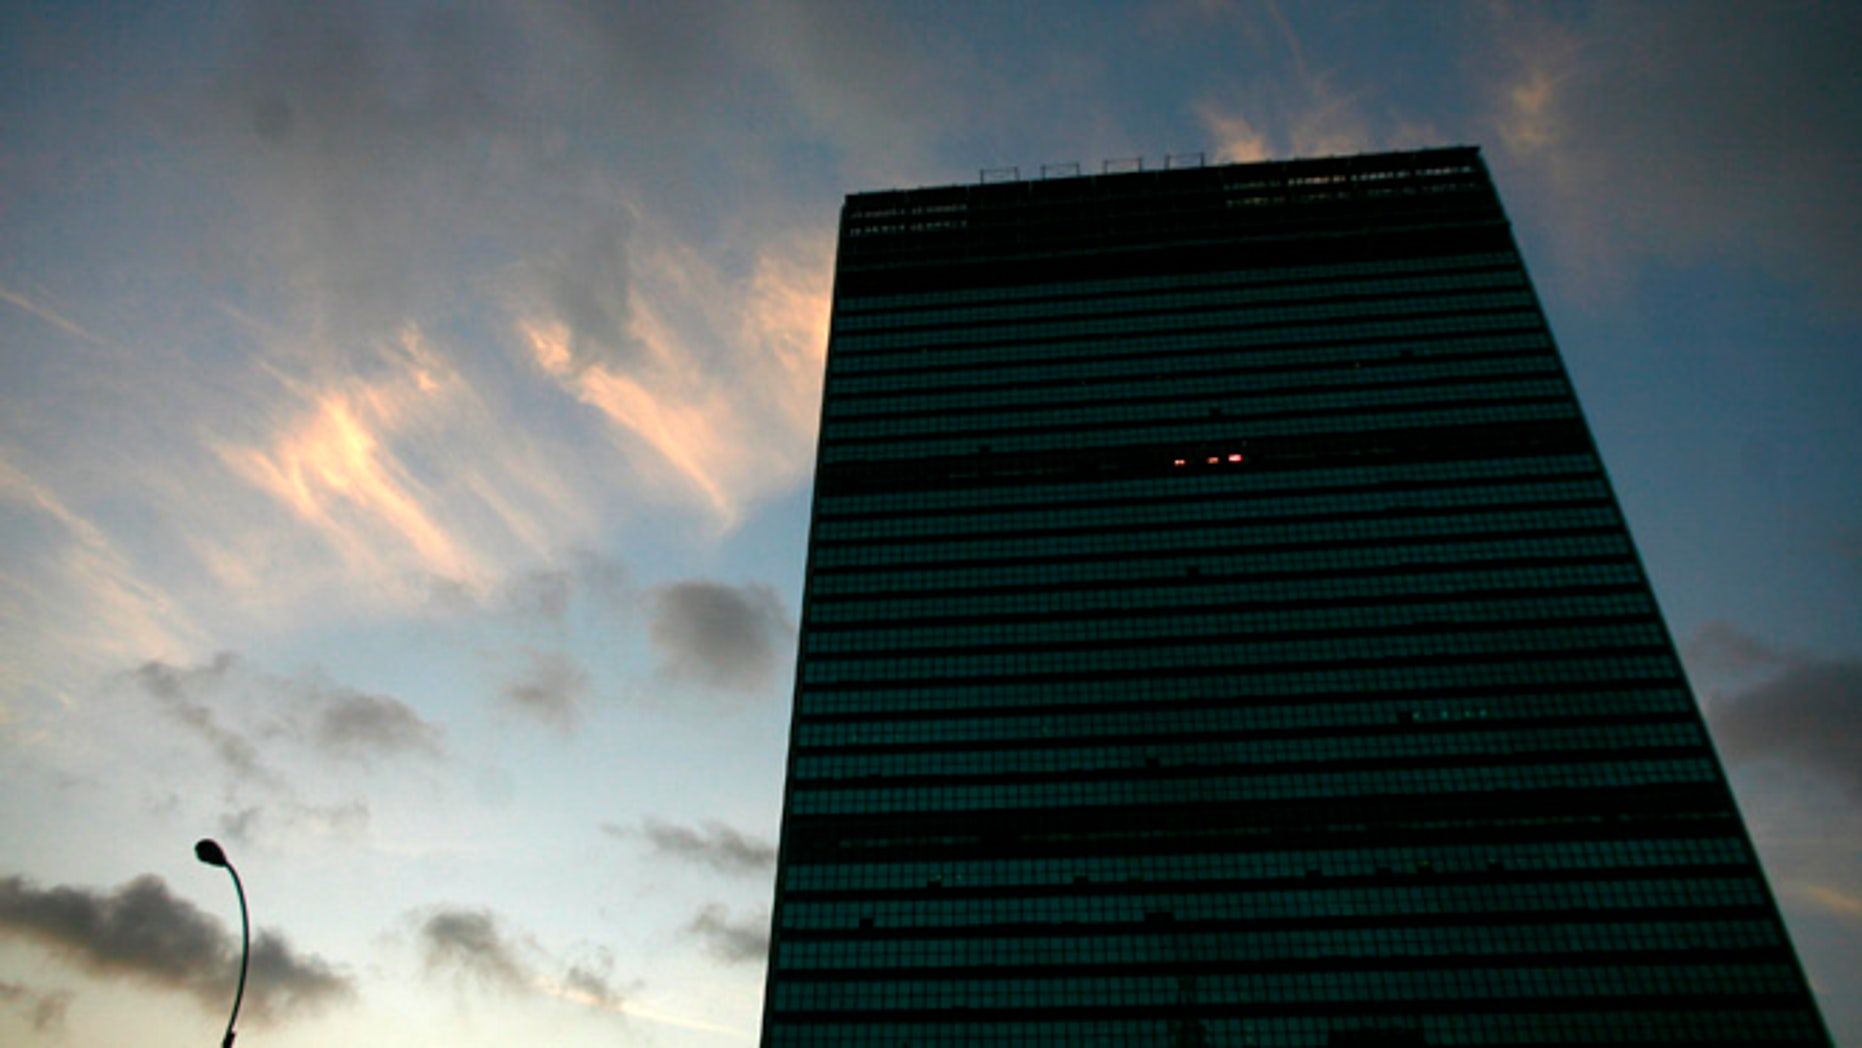 This file photo shows the United Nations headquarters building. (Reuters)